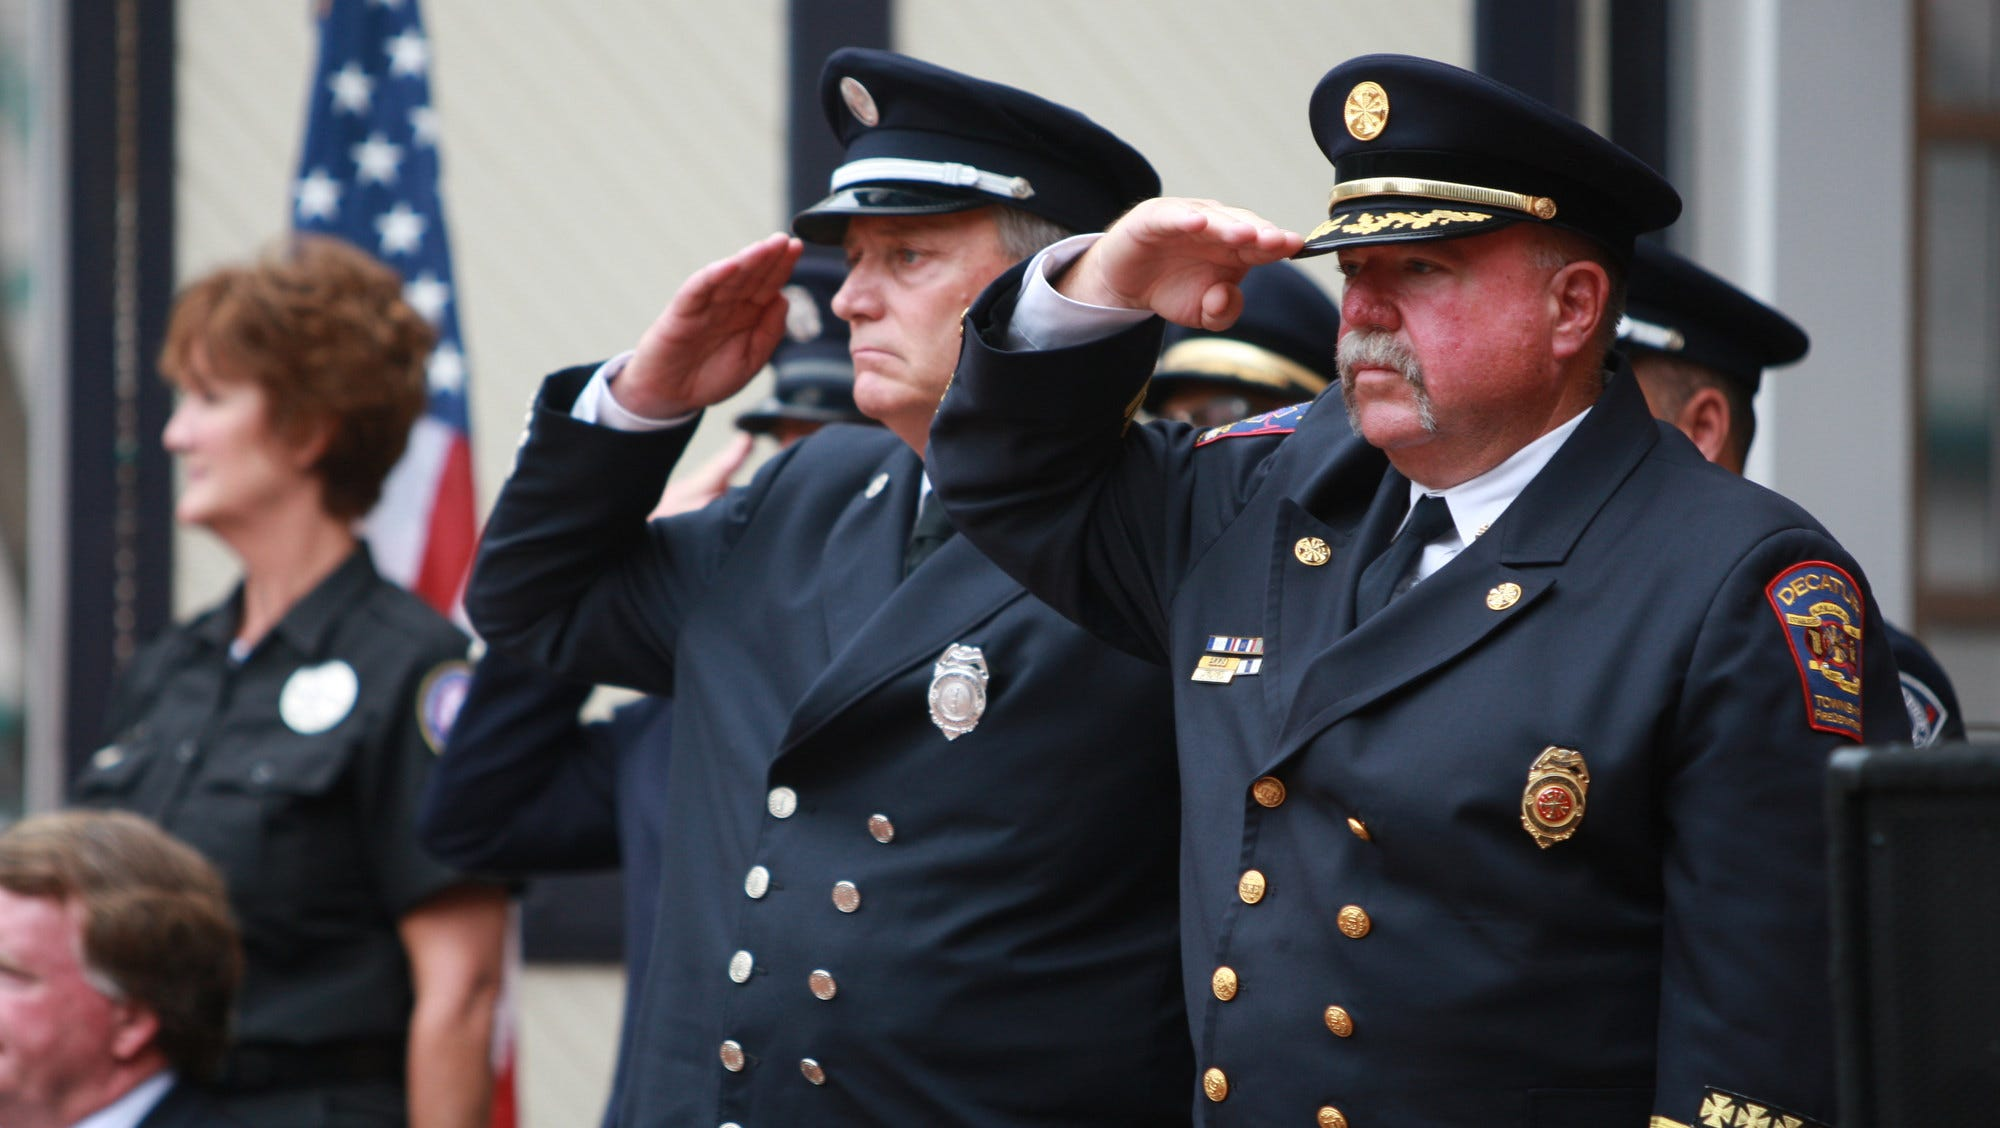 Police, firefighter unions sue city of Indianapolis